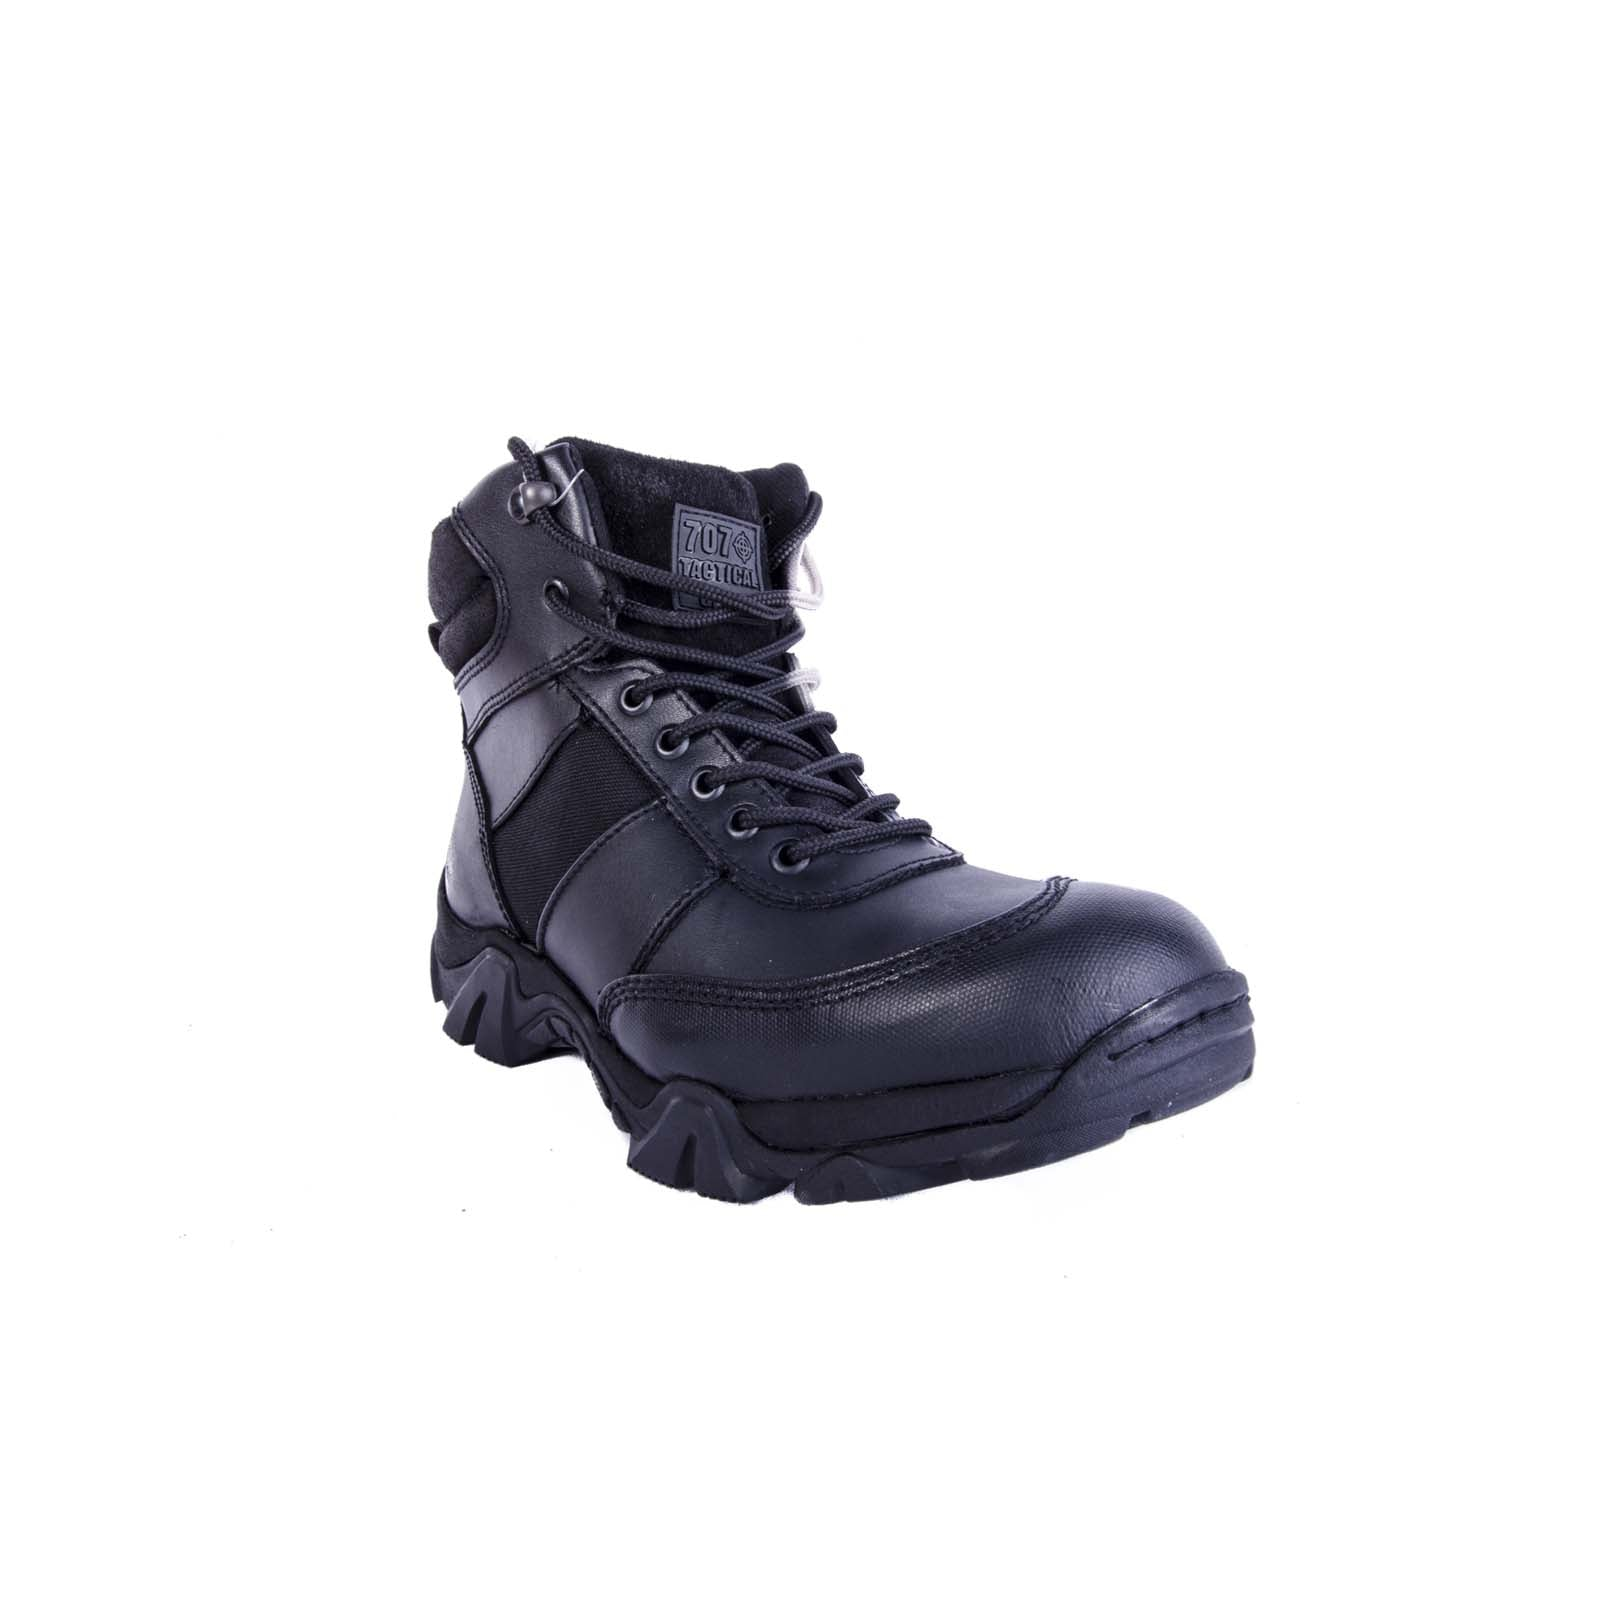 BOTAS TÁCTICAS D-FORCE BLACK SIXKA